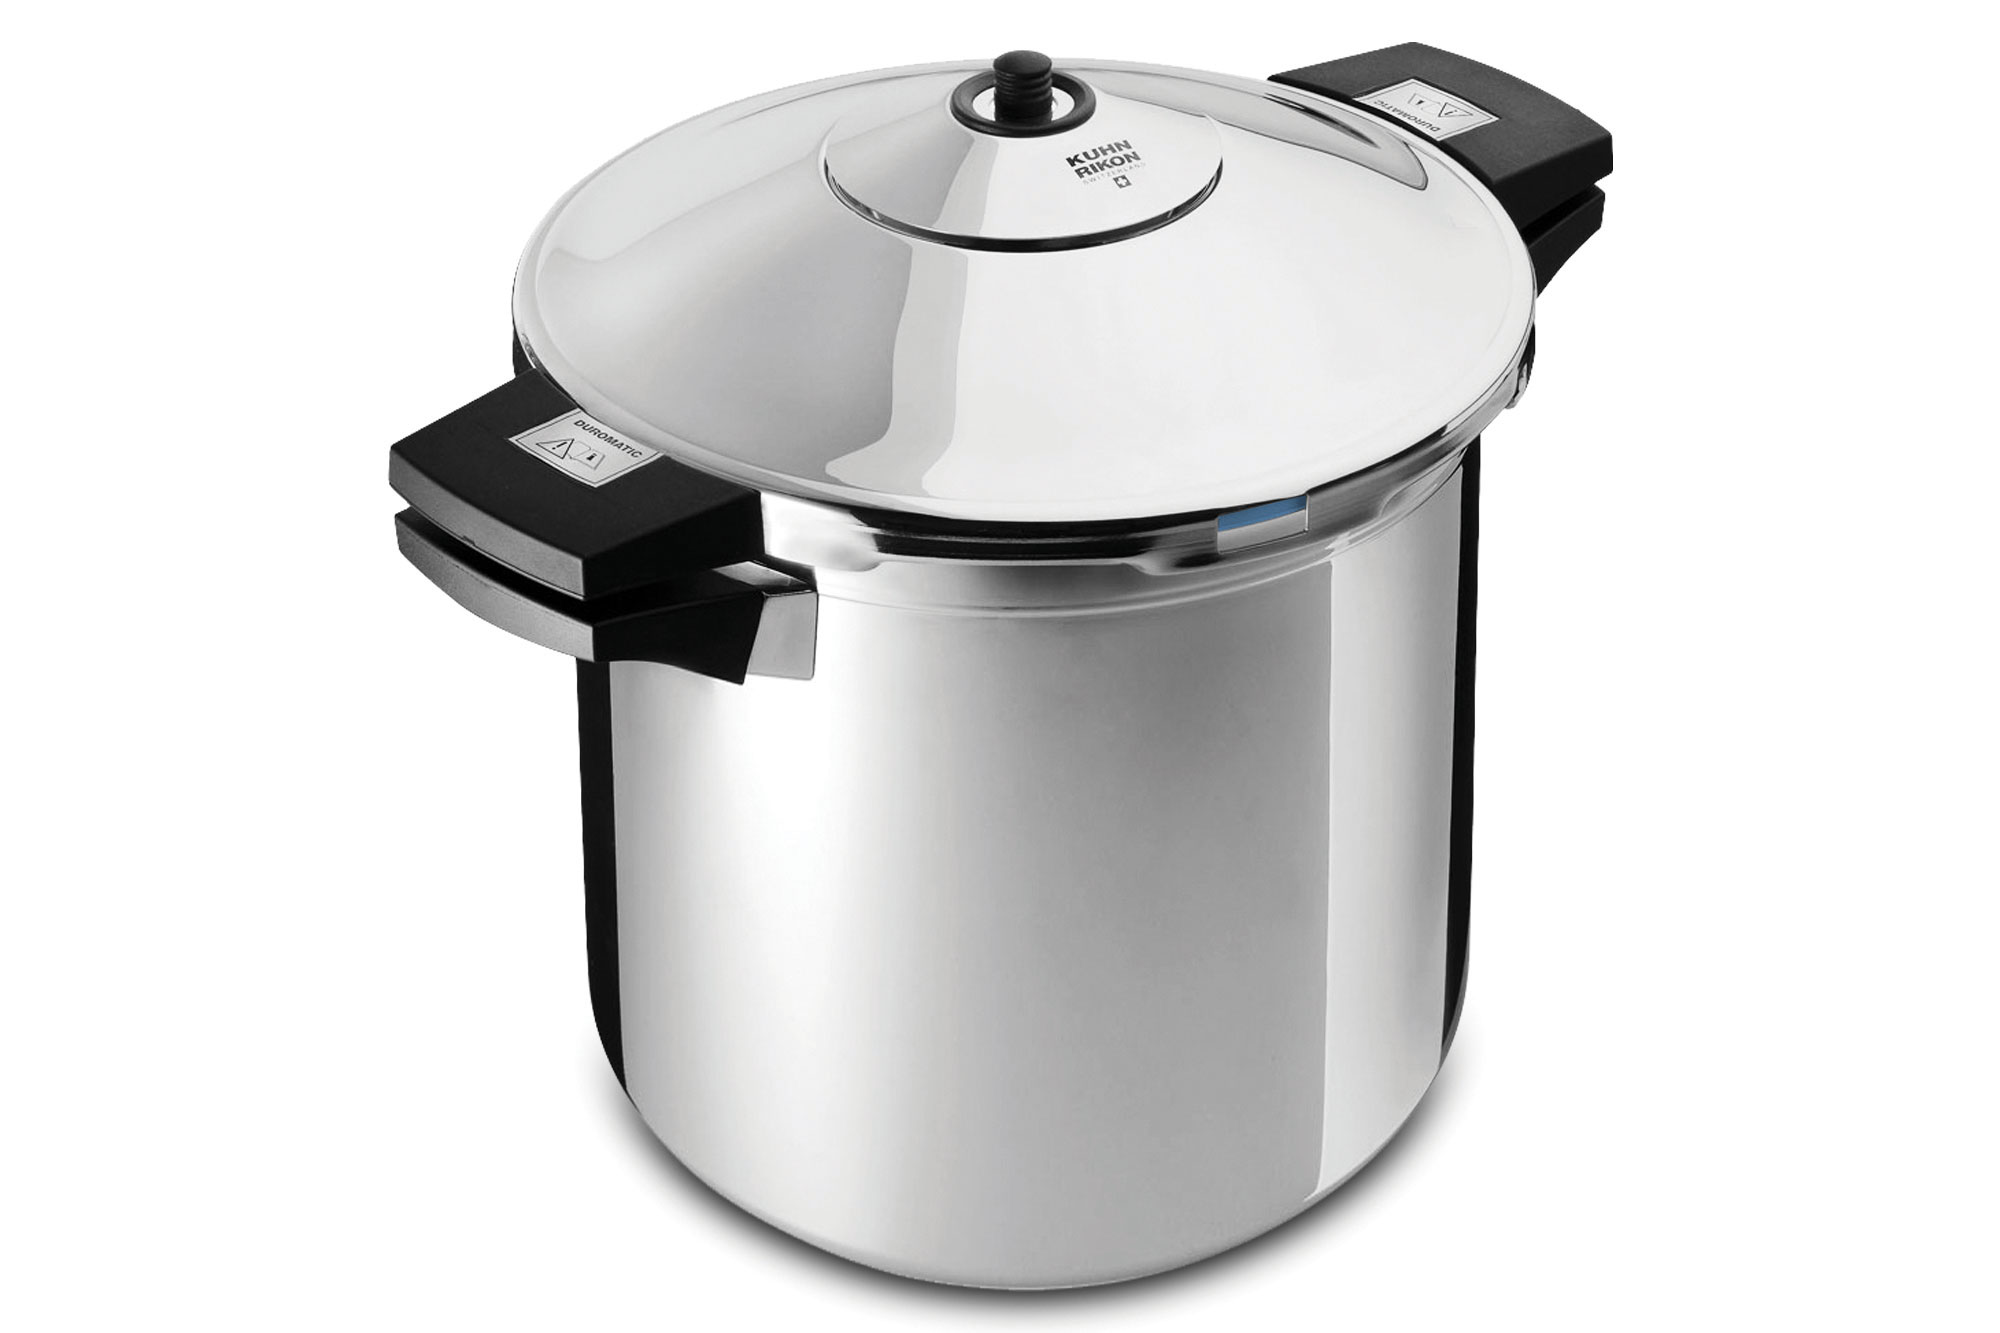 kuhn rikon duromatic stainless steel stock pot pressure cooker 8 quart cutlery and more. Black Bedroom Furniture Sets. Home Design Ideas